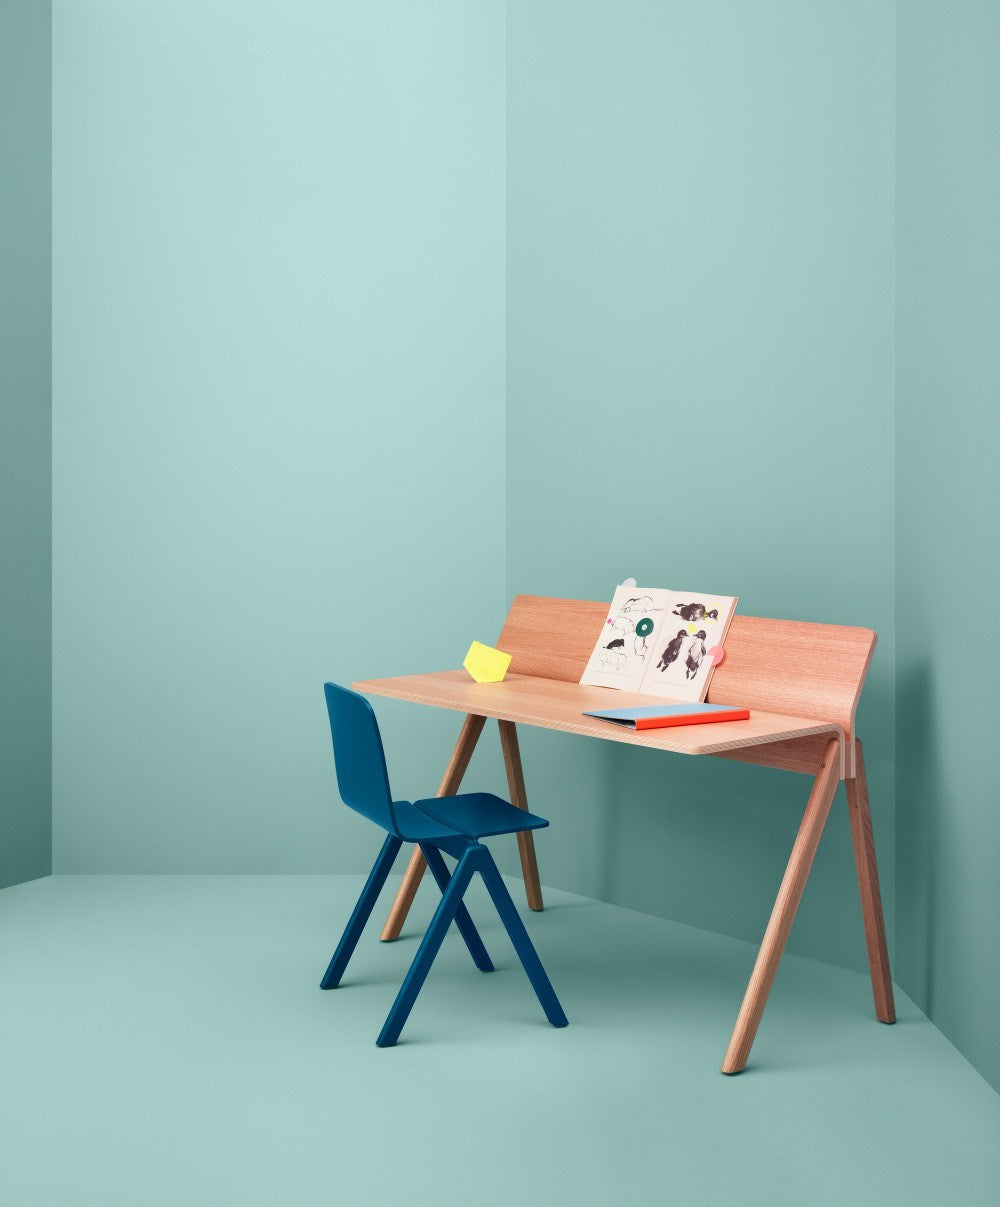 HAY COPENHAGUE MOULDED PLYWOOD DESK CPH190 - Eclectic Cool  - 4